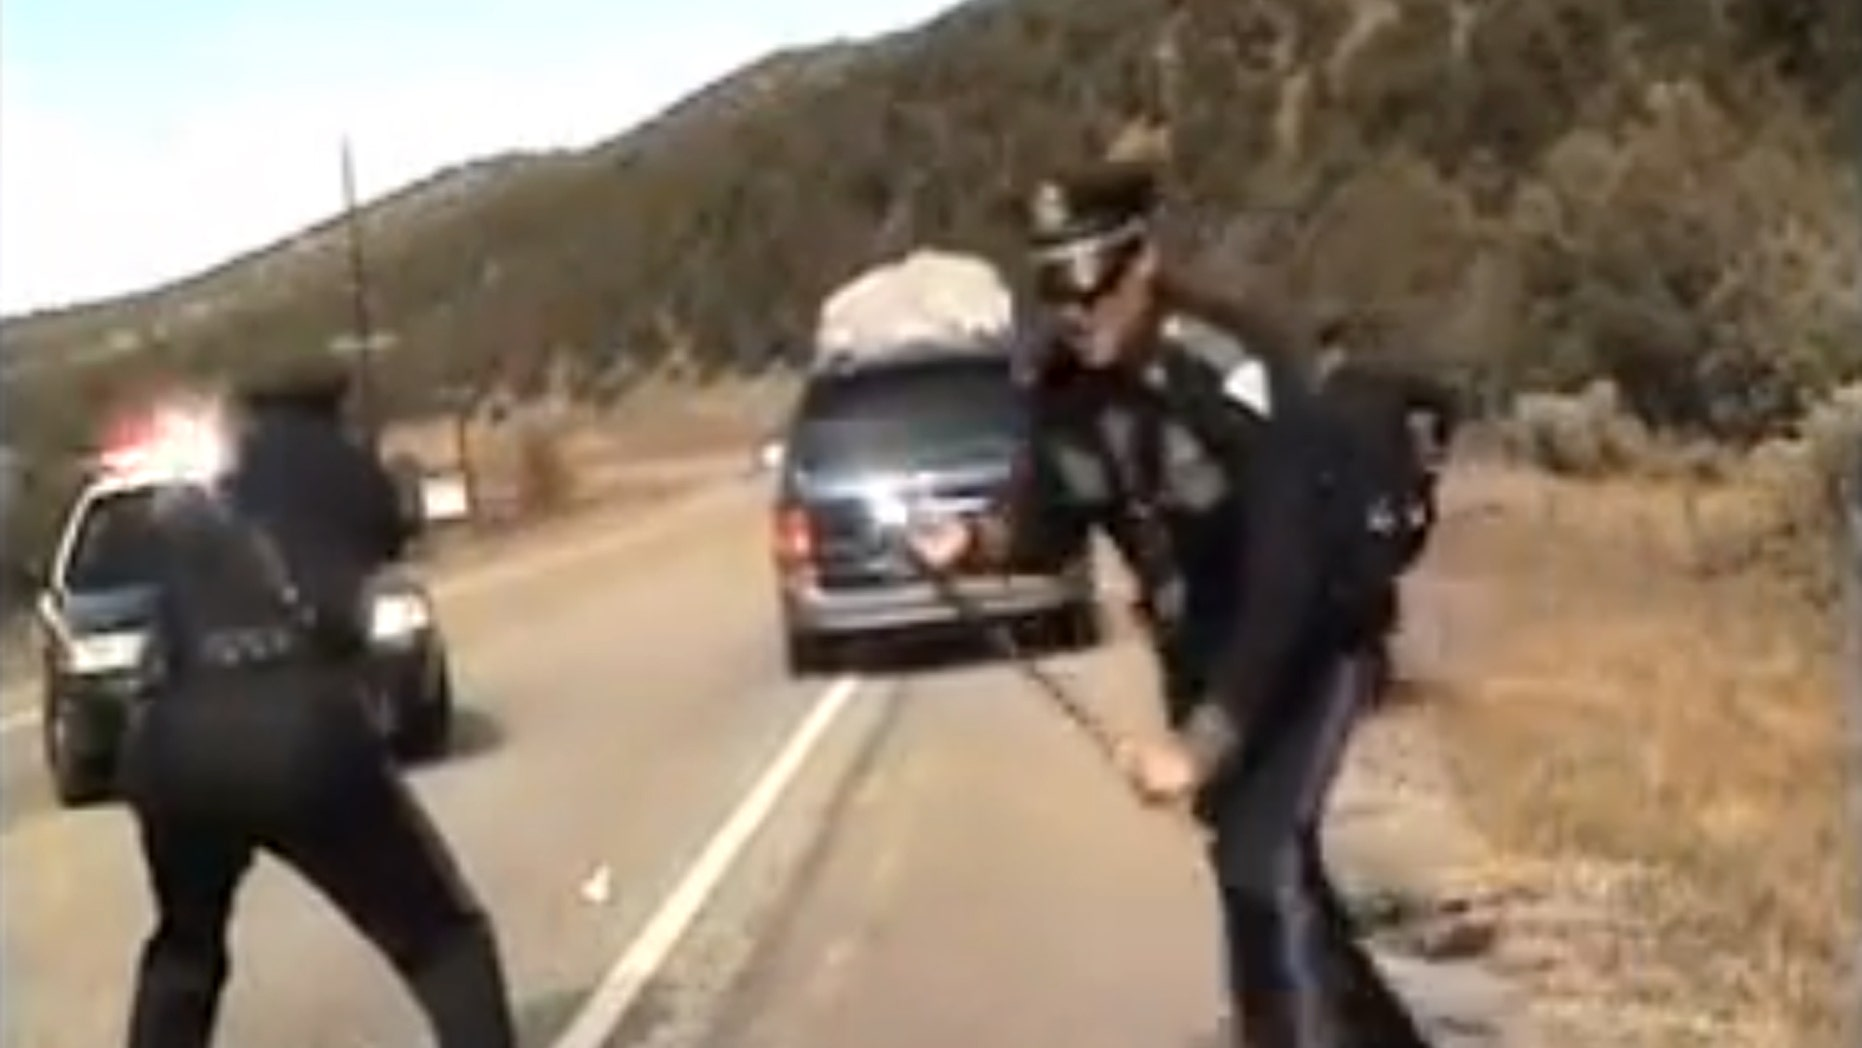 Three New Mexico State Police officers react as a minivan driven by motorist Oriana Farrell pulls away from a chaotic traffic stop that included one officer bashing the van's window with his night stick and another, Elias Montoya, at left, firing three shots as the van drives off, in this video made Oct. 28, from the dashboard camera of the police cruiser. Montoya, the officer who fired at the van full of children, has been suspended. (AP Photo/New Mexico State Police)